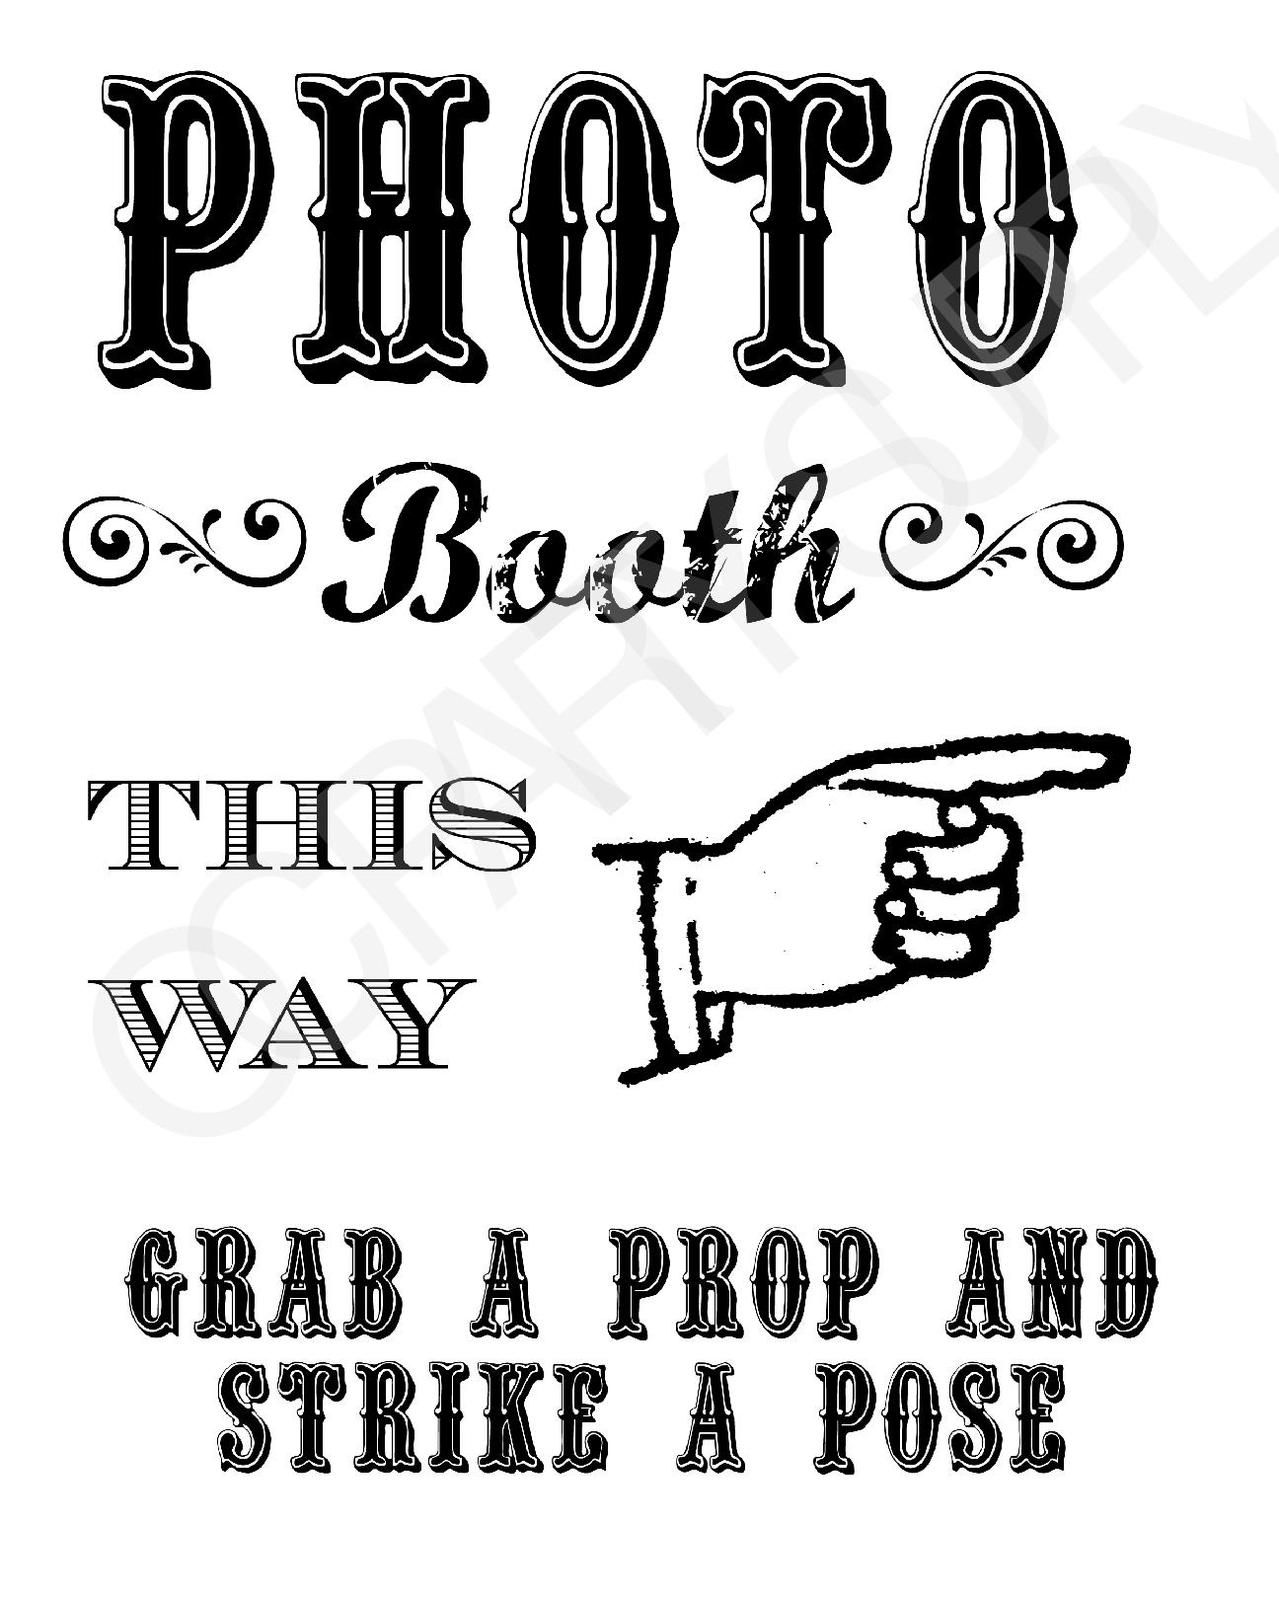 photo about Free Printable Photo Booth Sign referred to as Seize A PROP Hit A POSE! Totally free PRINTABLE Photograph BOOTH